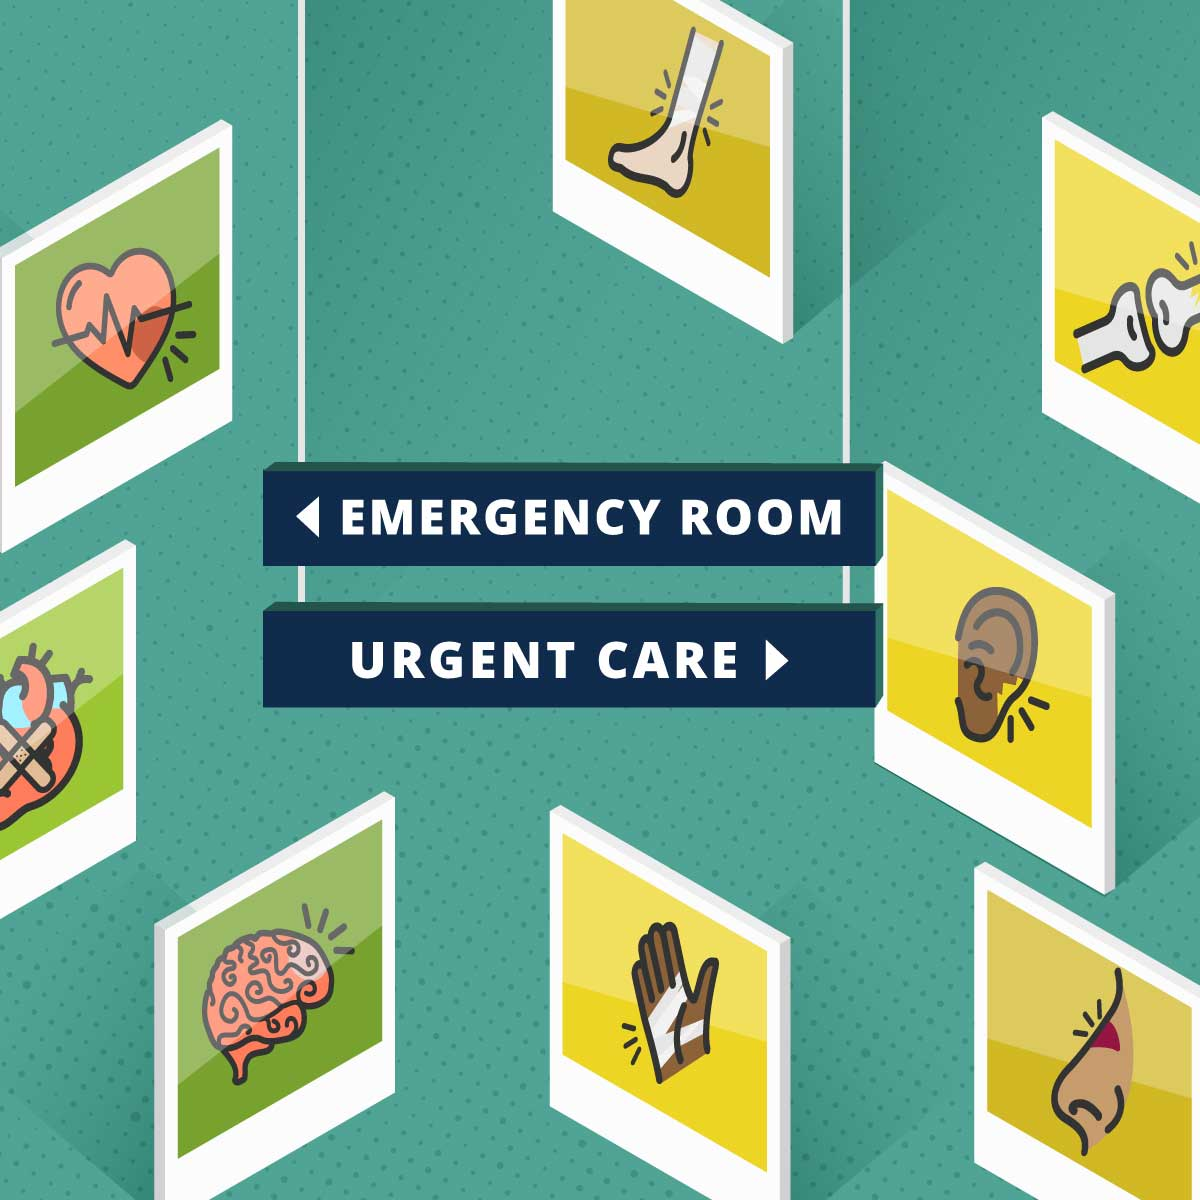 Urgent Care vs. ER: What's the Difference and Where Should You Go? Square